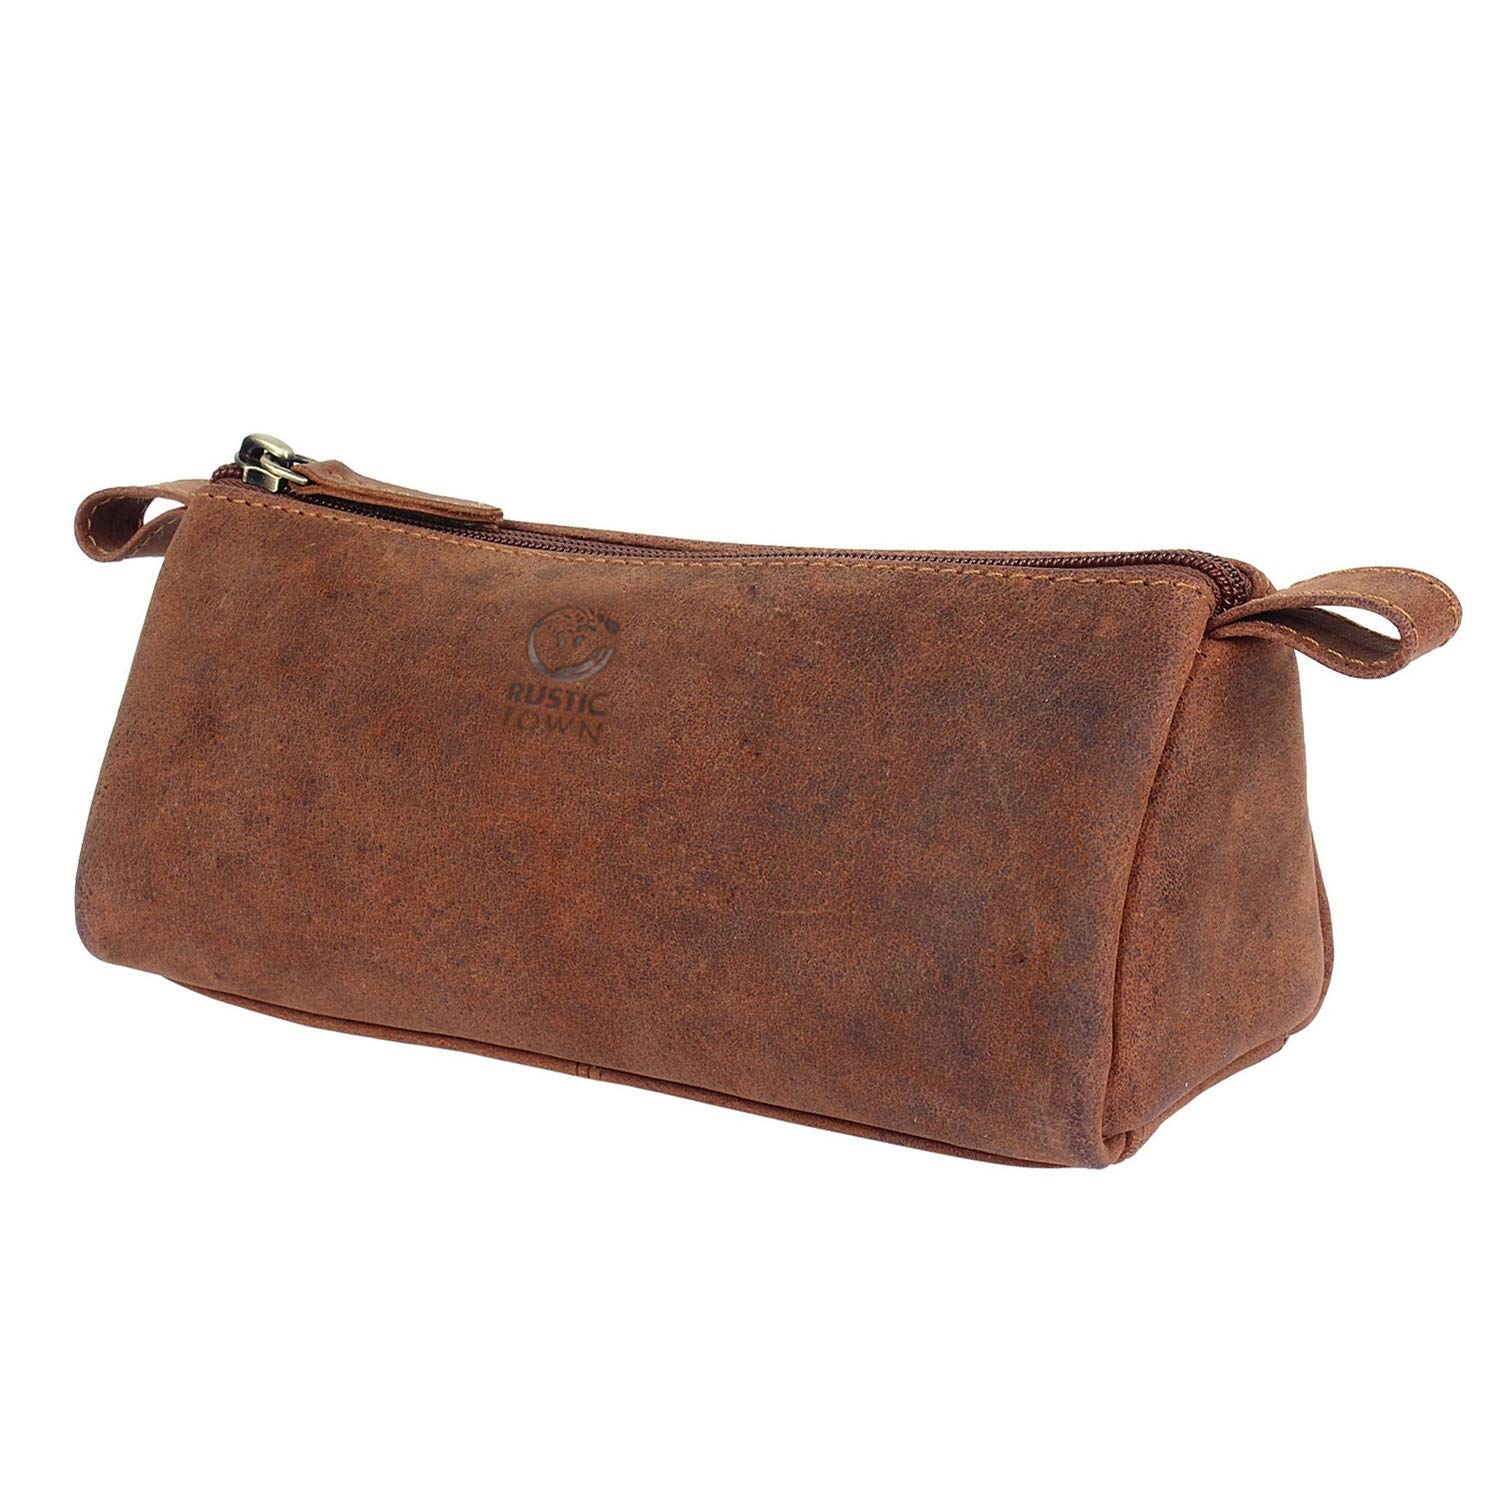 Rustic Town Leather Pencil Case - Zippered Pen Pouch for School, Work & Office(Brown) by Rustic Town